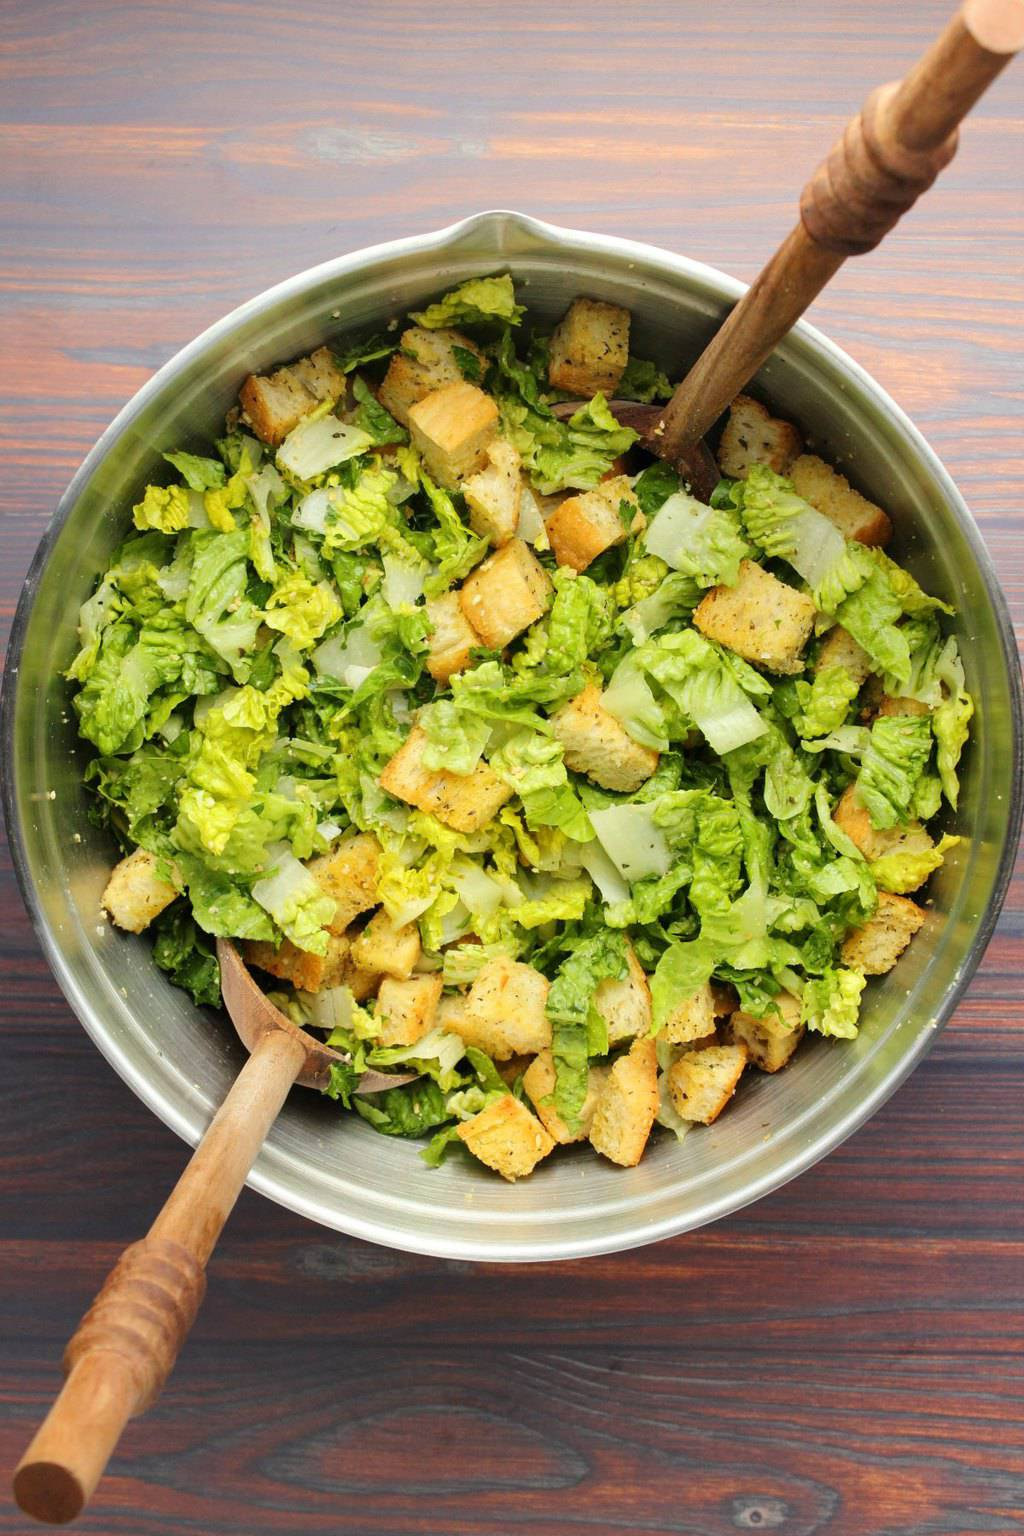 Tossing up a vegan caesar salad in a silver salad bowl with wooden salad spoons.